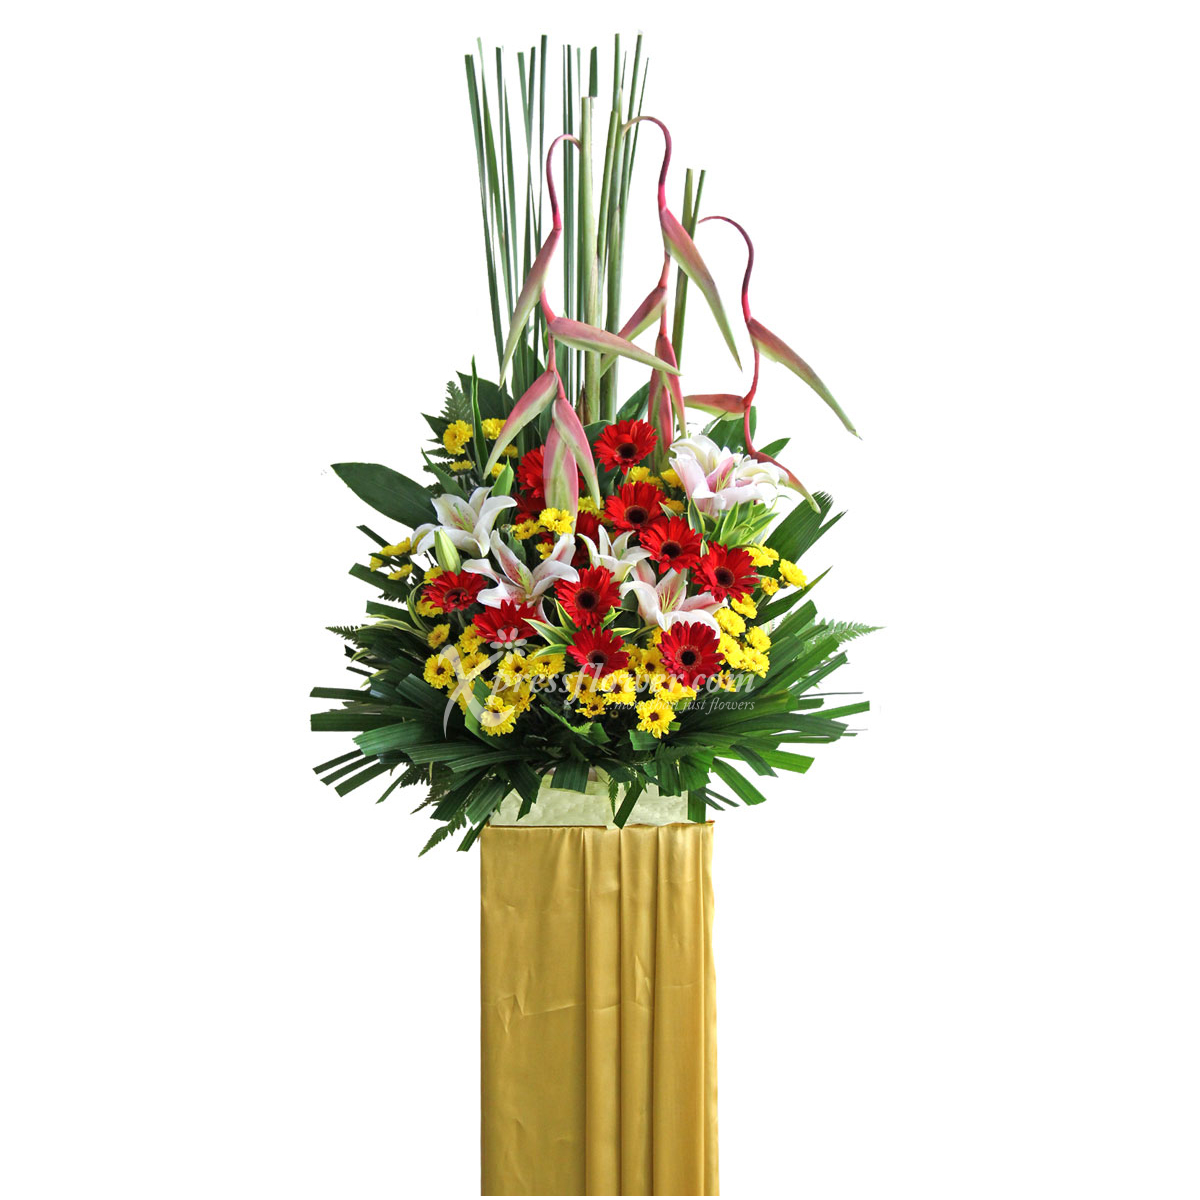 CS1705 Impressive Growth congratulatory flower opening stand